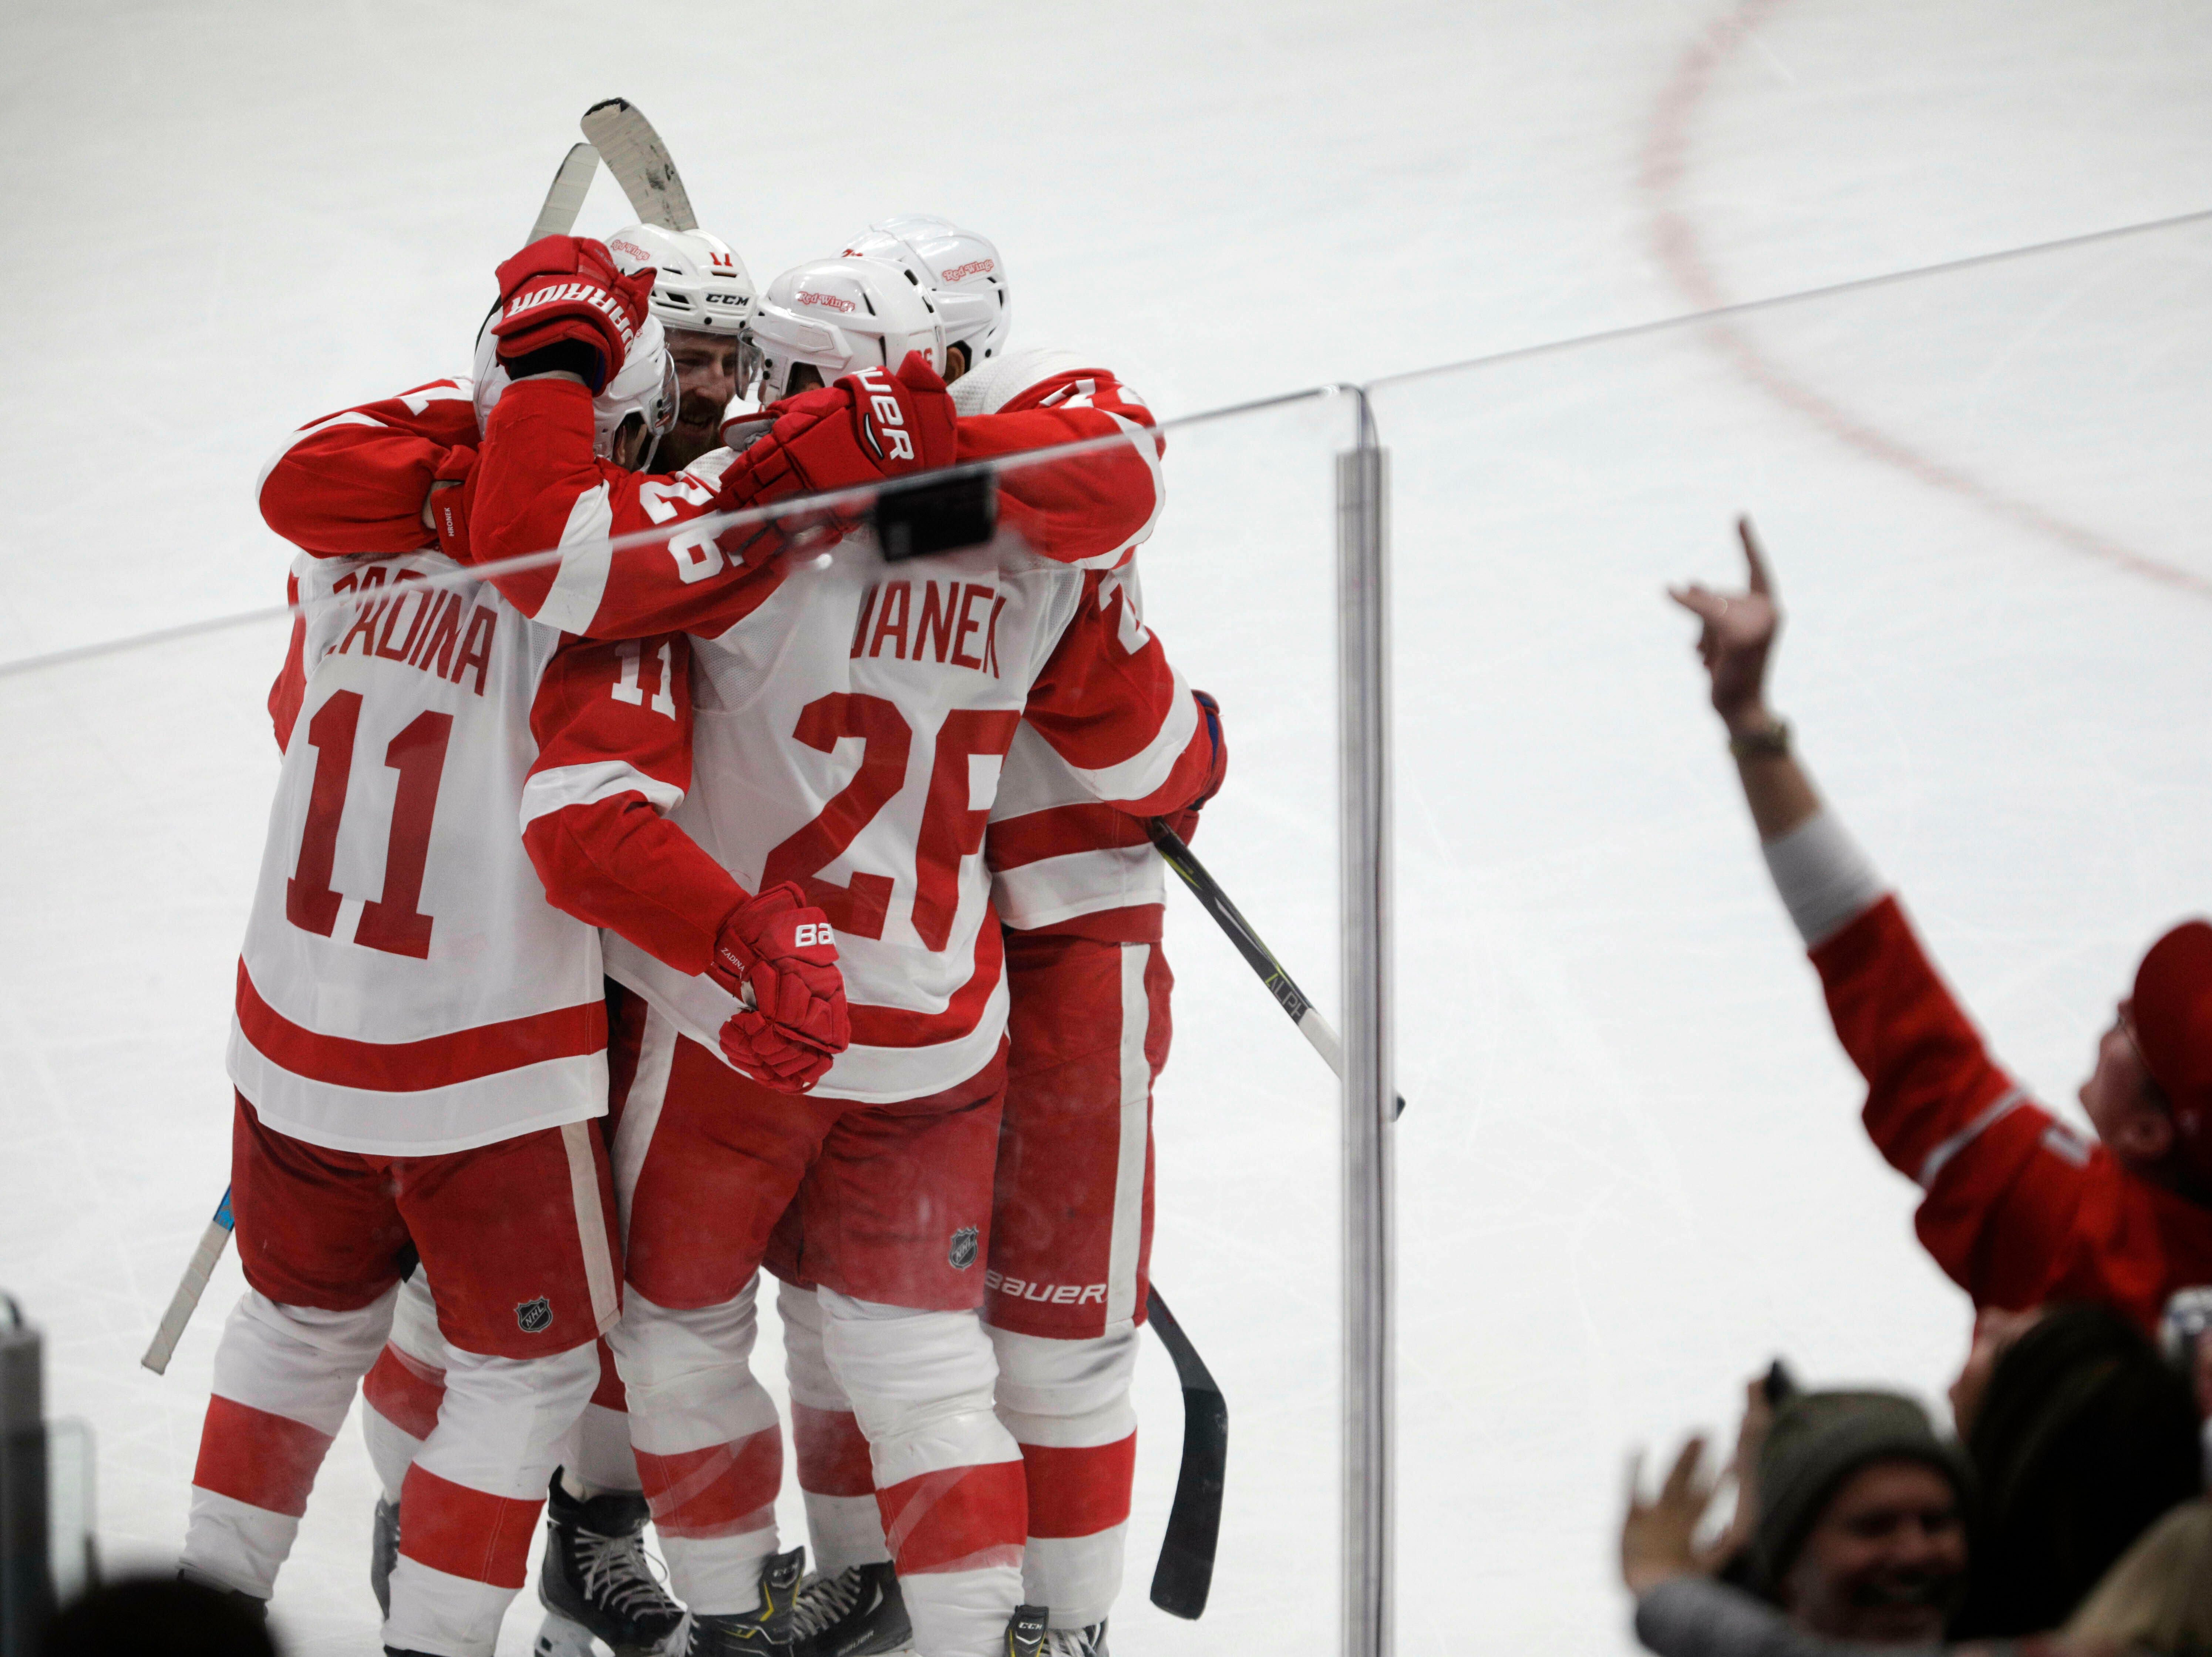 Teammates mob Detroit Red Wings right wing Filip Zadina (11) after his goal against the Colorado Avalanche during the third period of an NHL hockey game in Denver, Tuesday, March 5, 2019. Colorado won 4-3 in overtime. (AP Photo/Joe Mahoney)